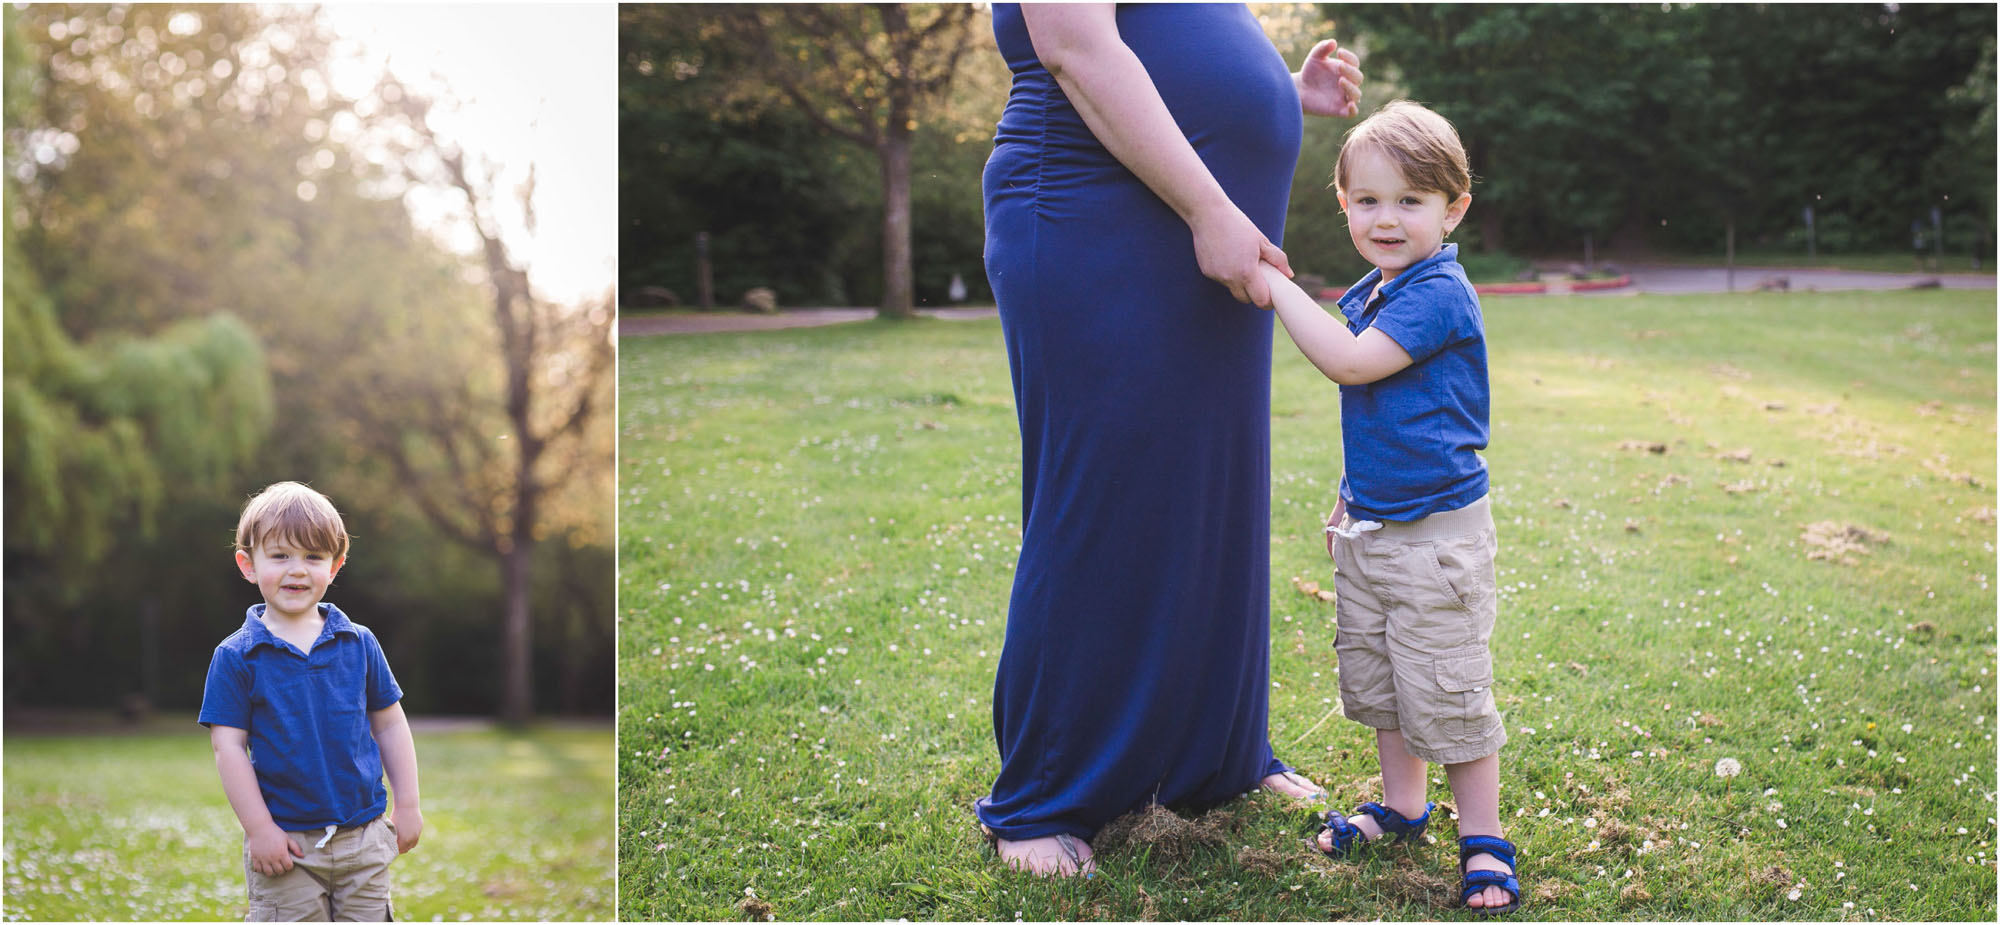 ashley vos photography seattle family maternity photographer_0001.jpg